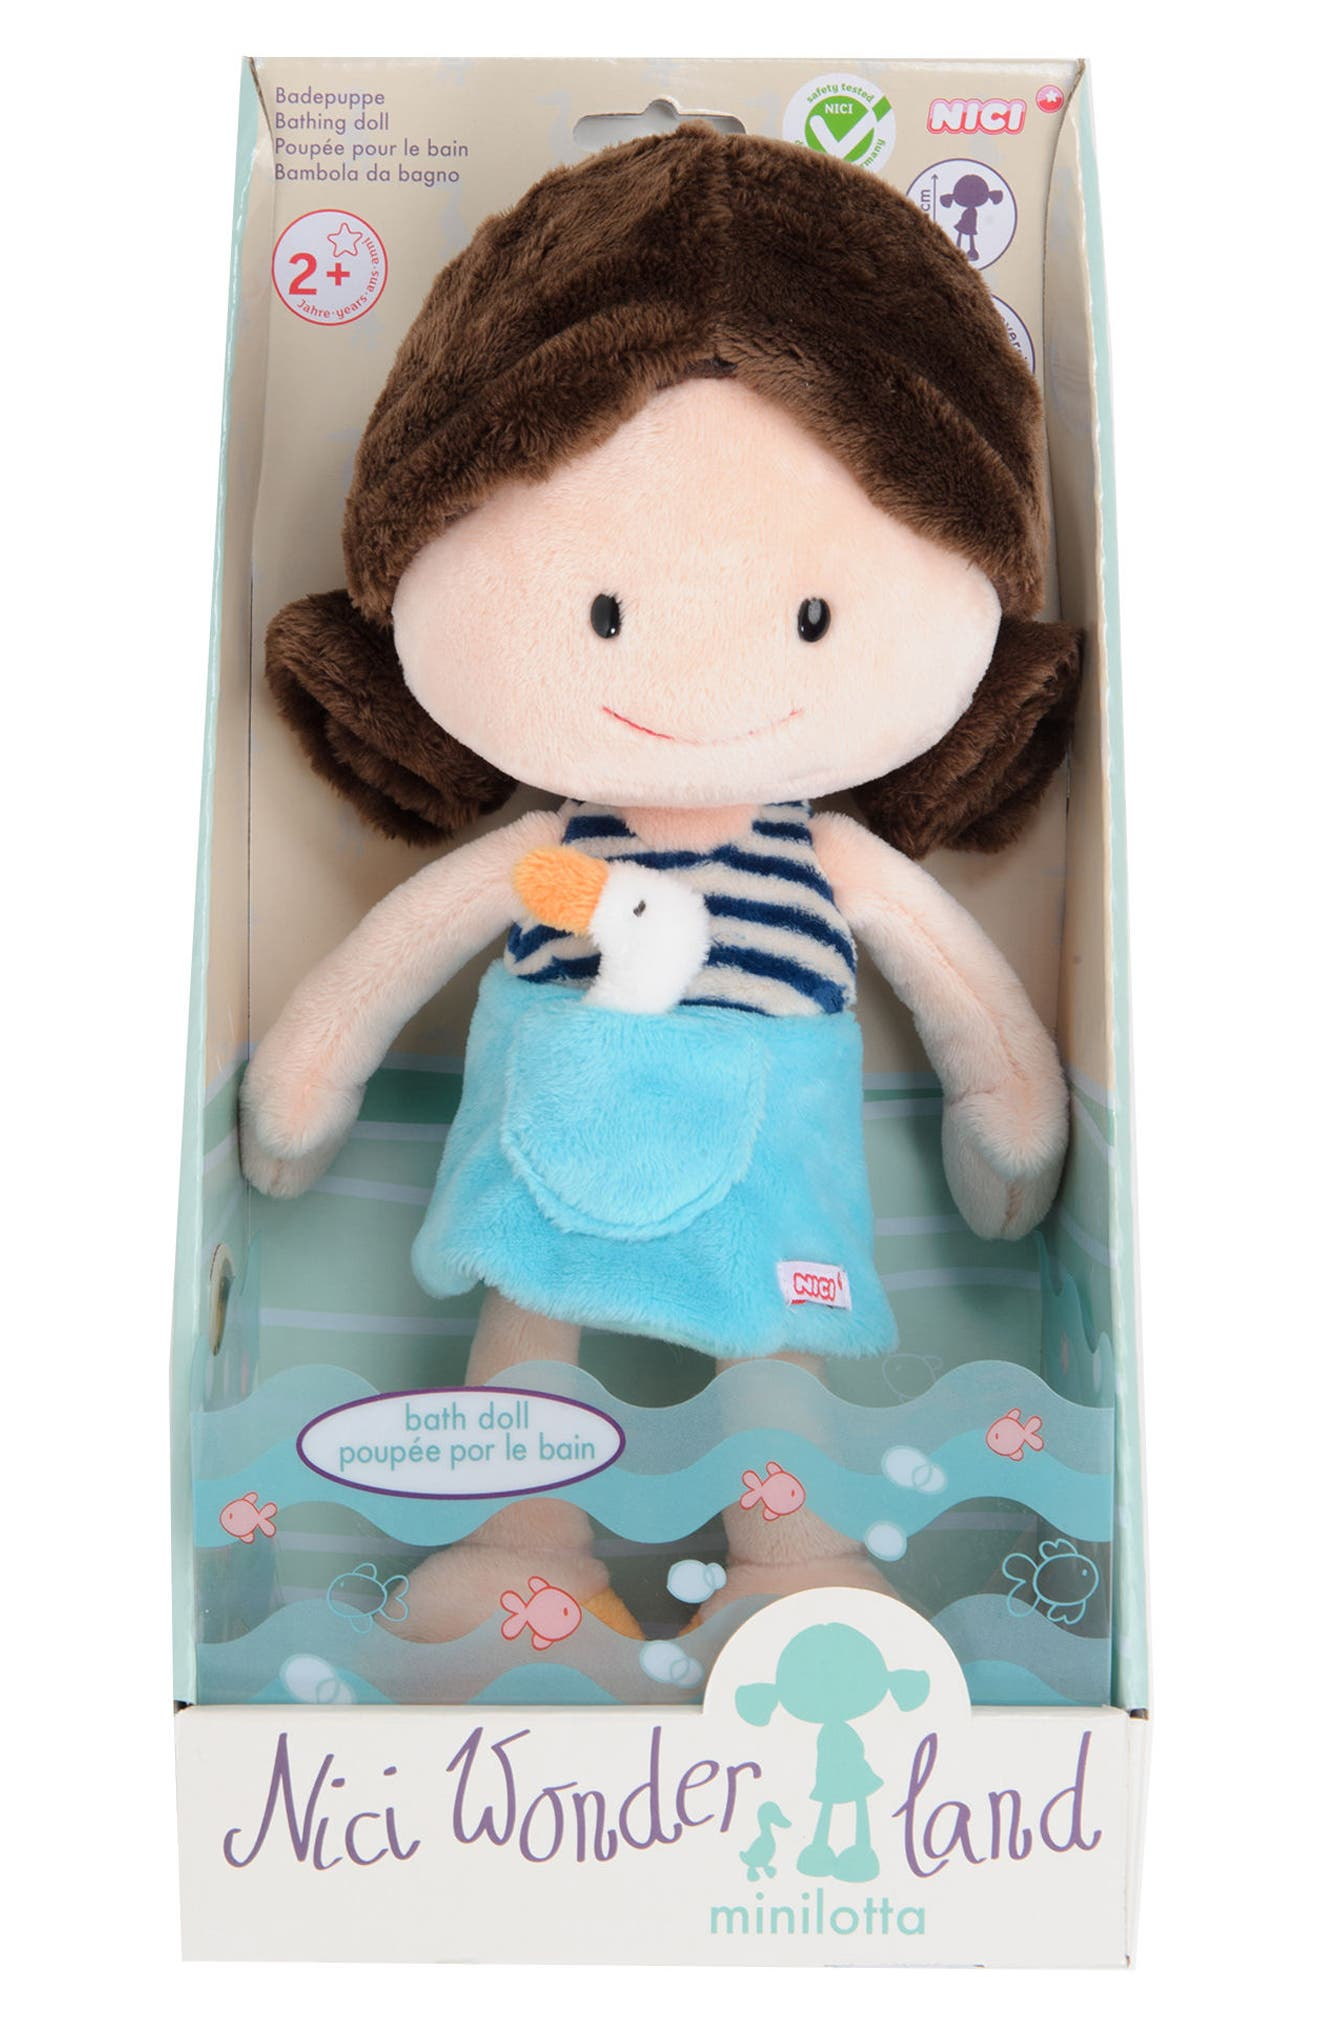 Alternate Image 1 Selected - Neat Oh! Nici® Wonderland Minilotta the Bathing Plush Doll